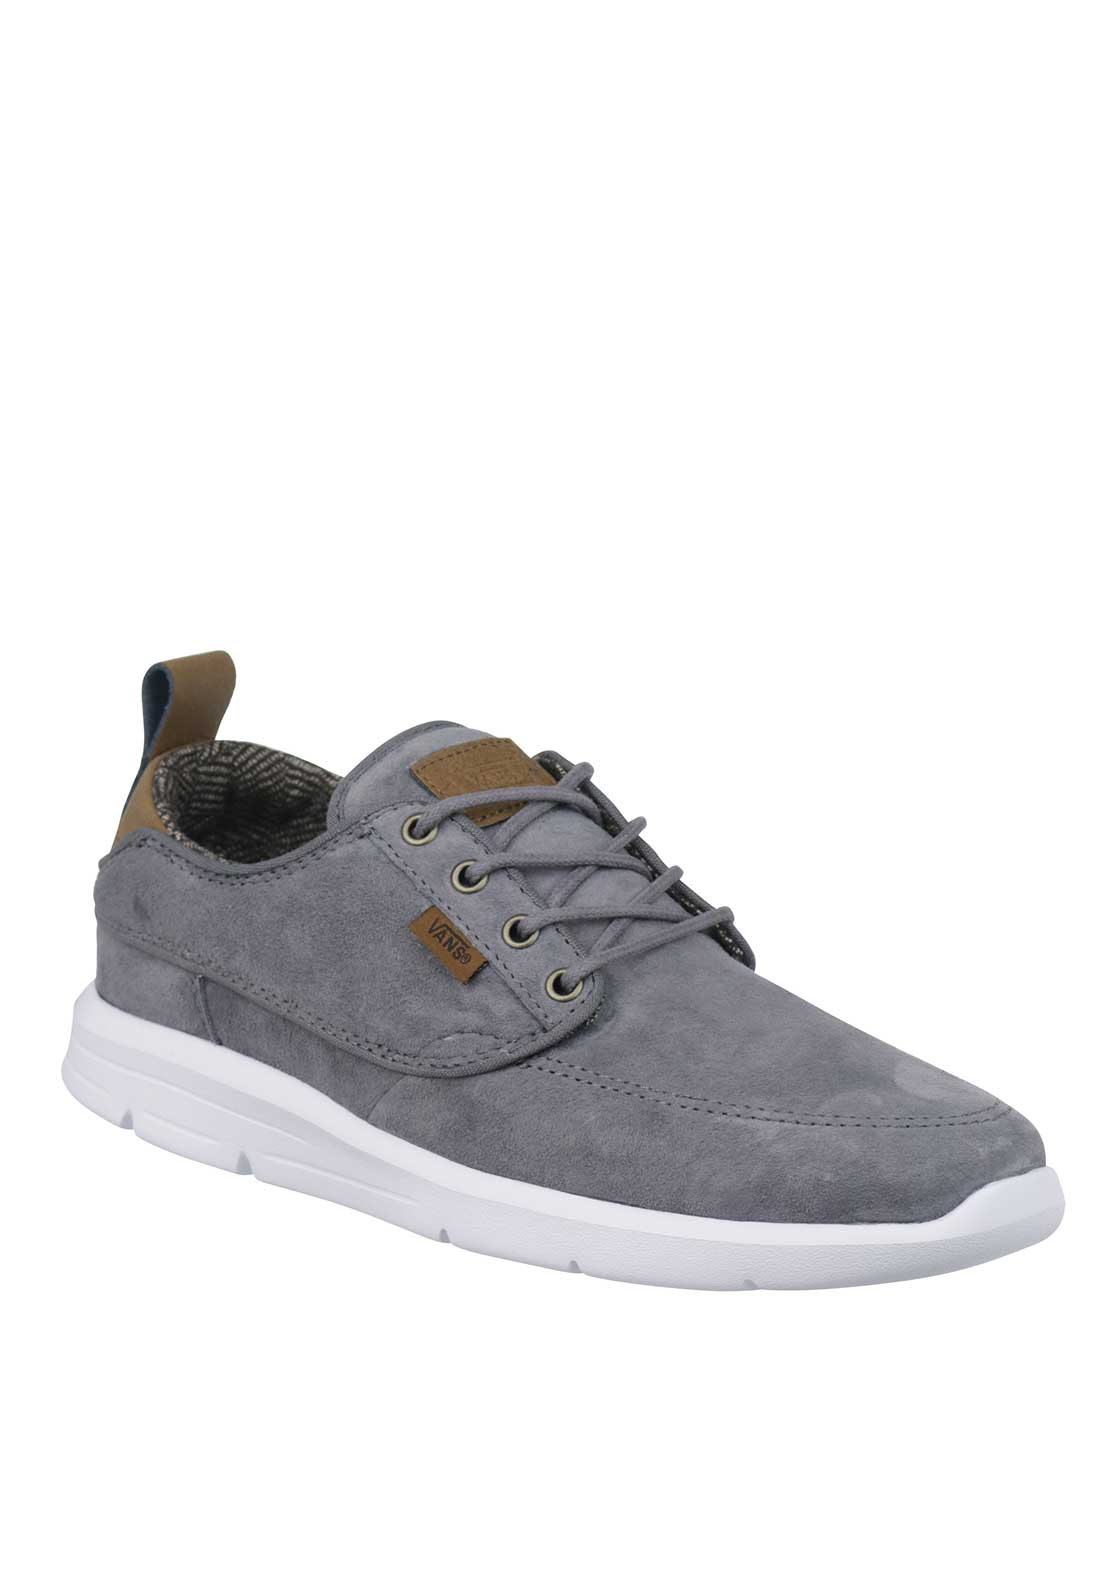 Vans Mens Suede Brigata Trainers, Grey